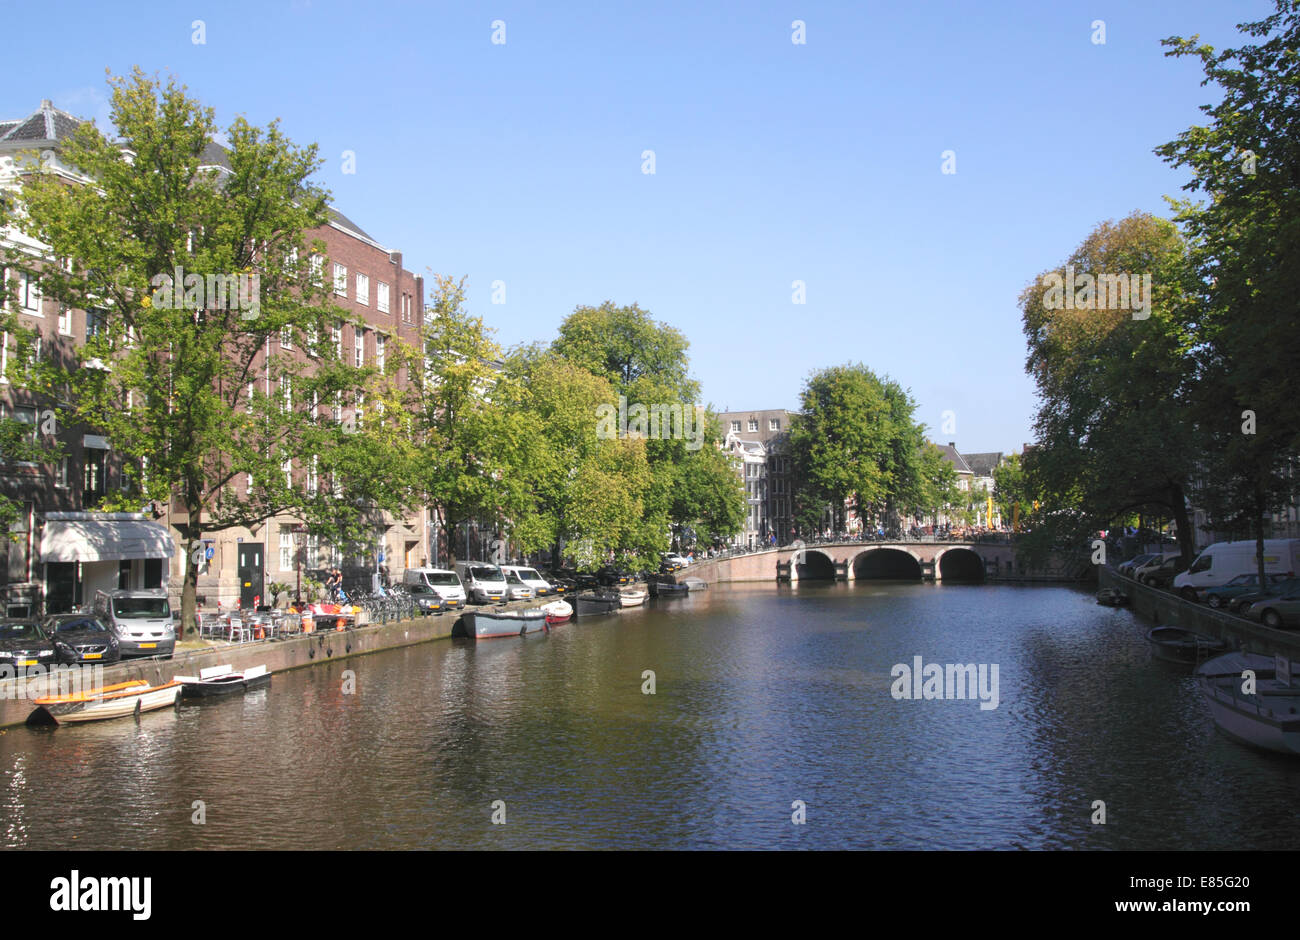 Singel Canal in Western Canal Ring District Amsterdam Holland - Stock Image